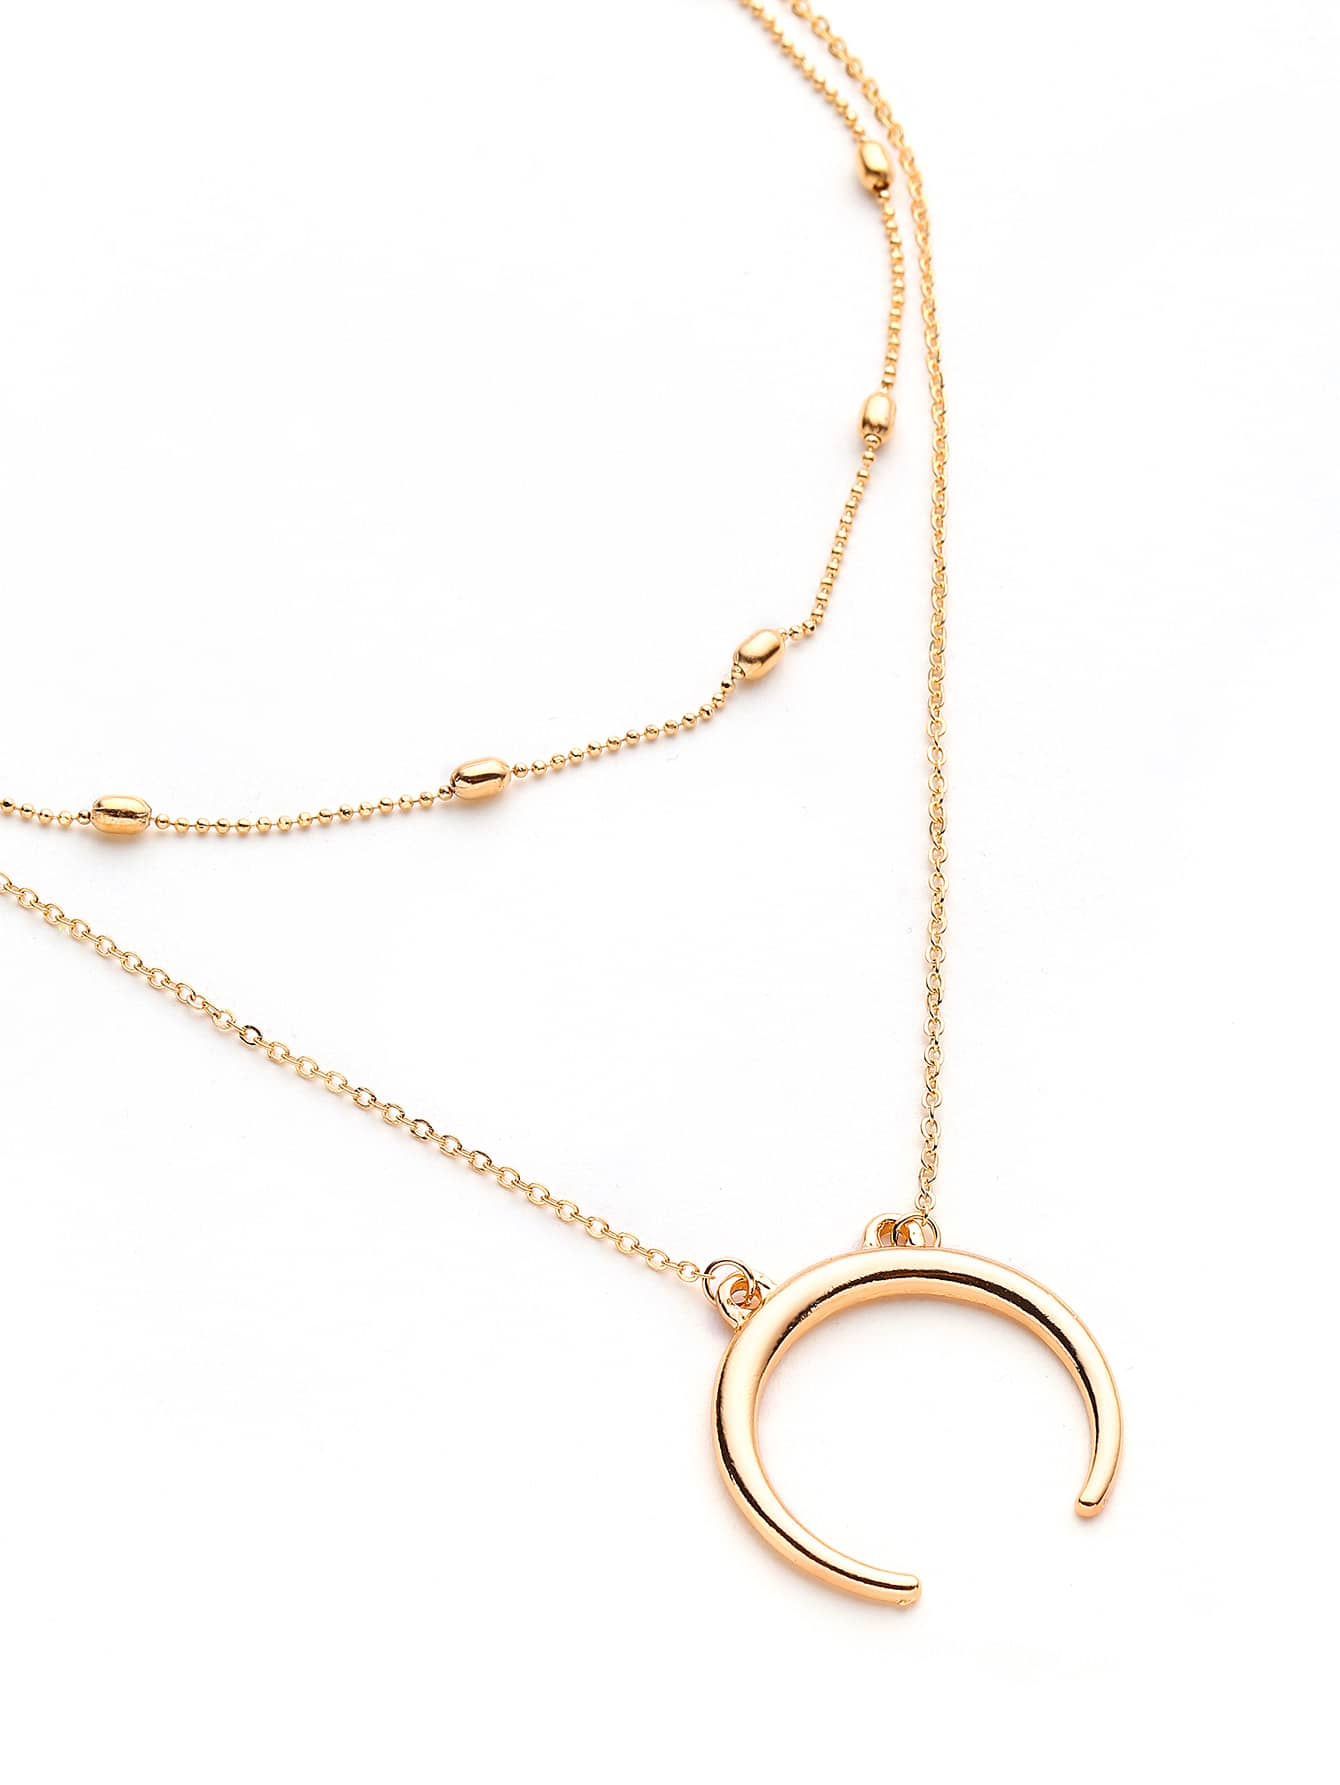 Metal Moon Pendant Necklace With Chain Choker